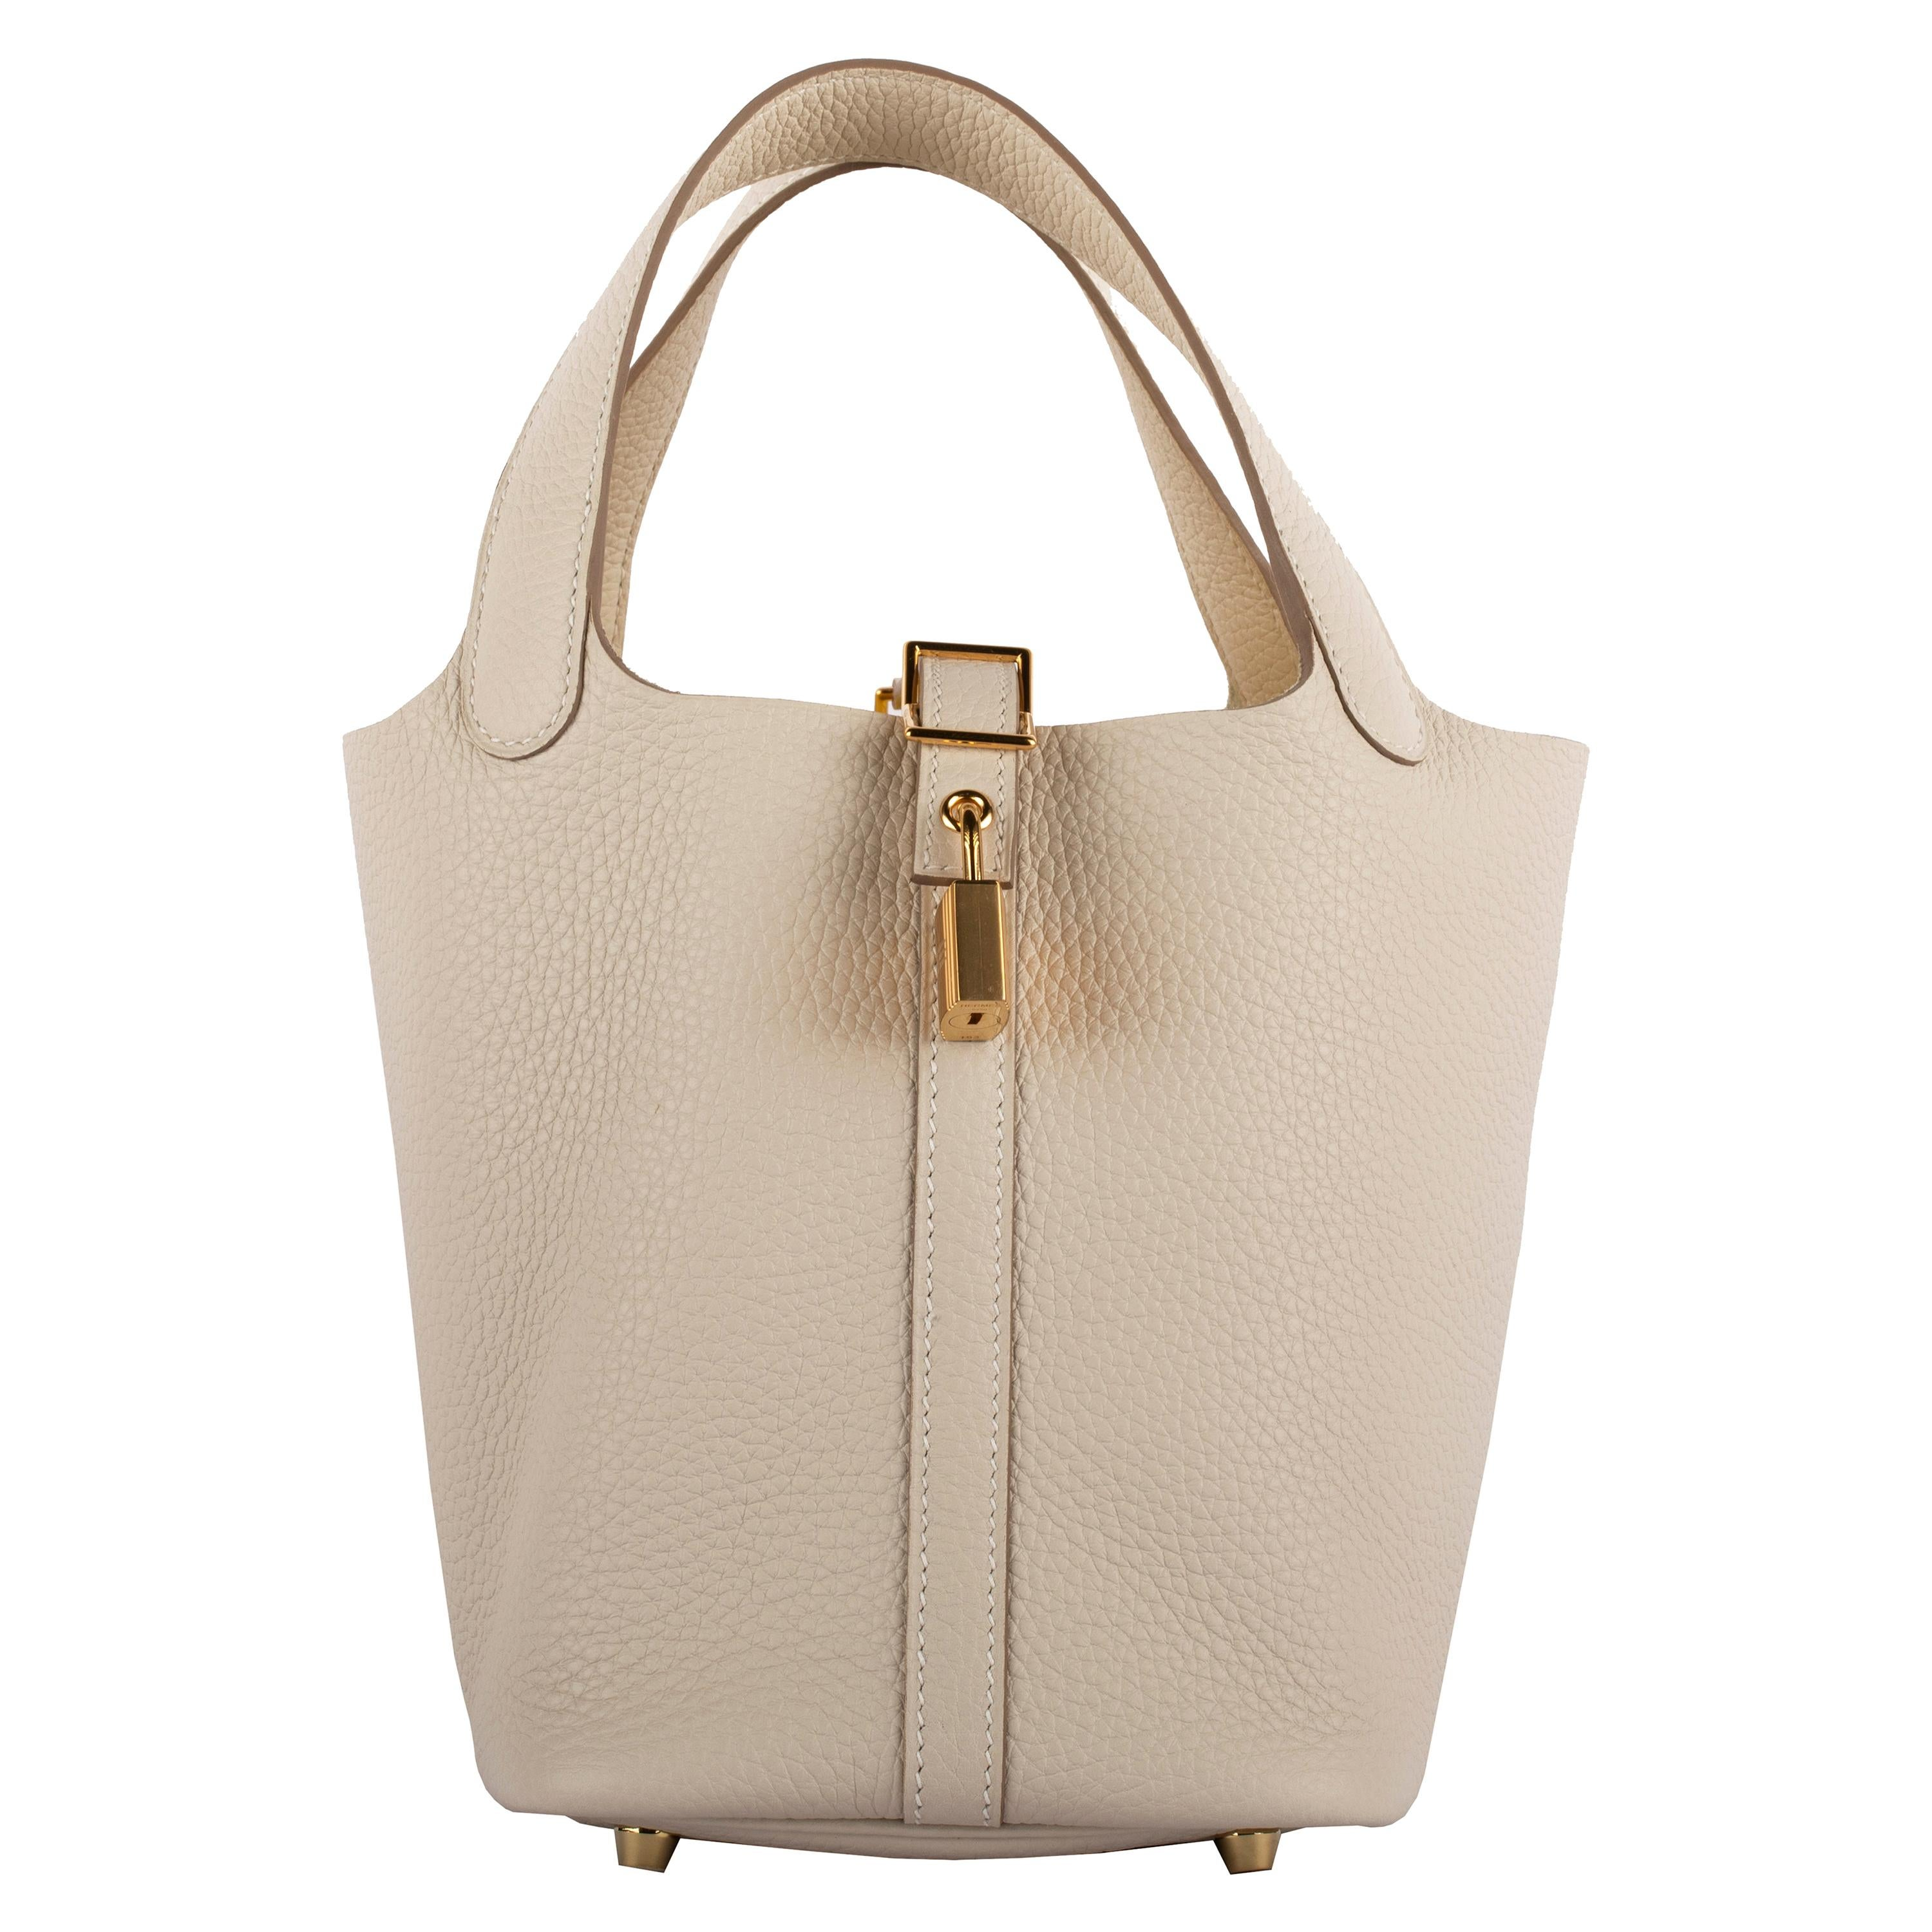 1stdibs Exclusive Hermes Picotin 18cm Craie Clemence Gold Hardware